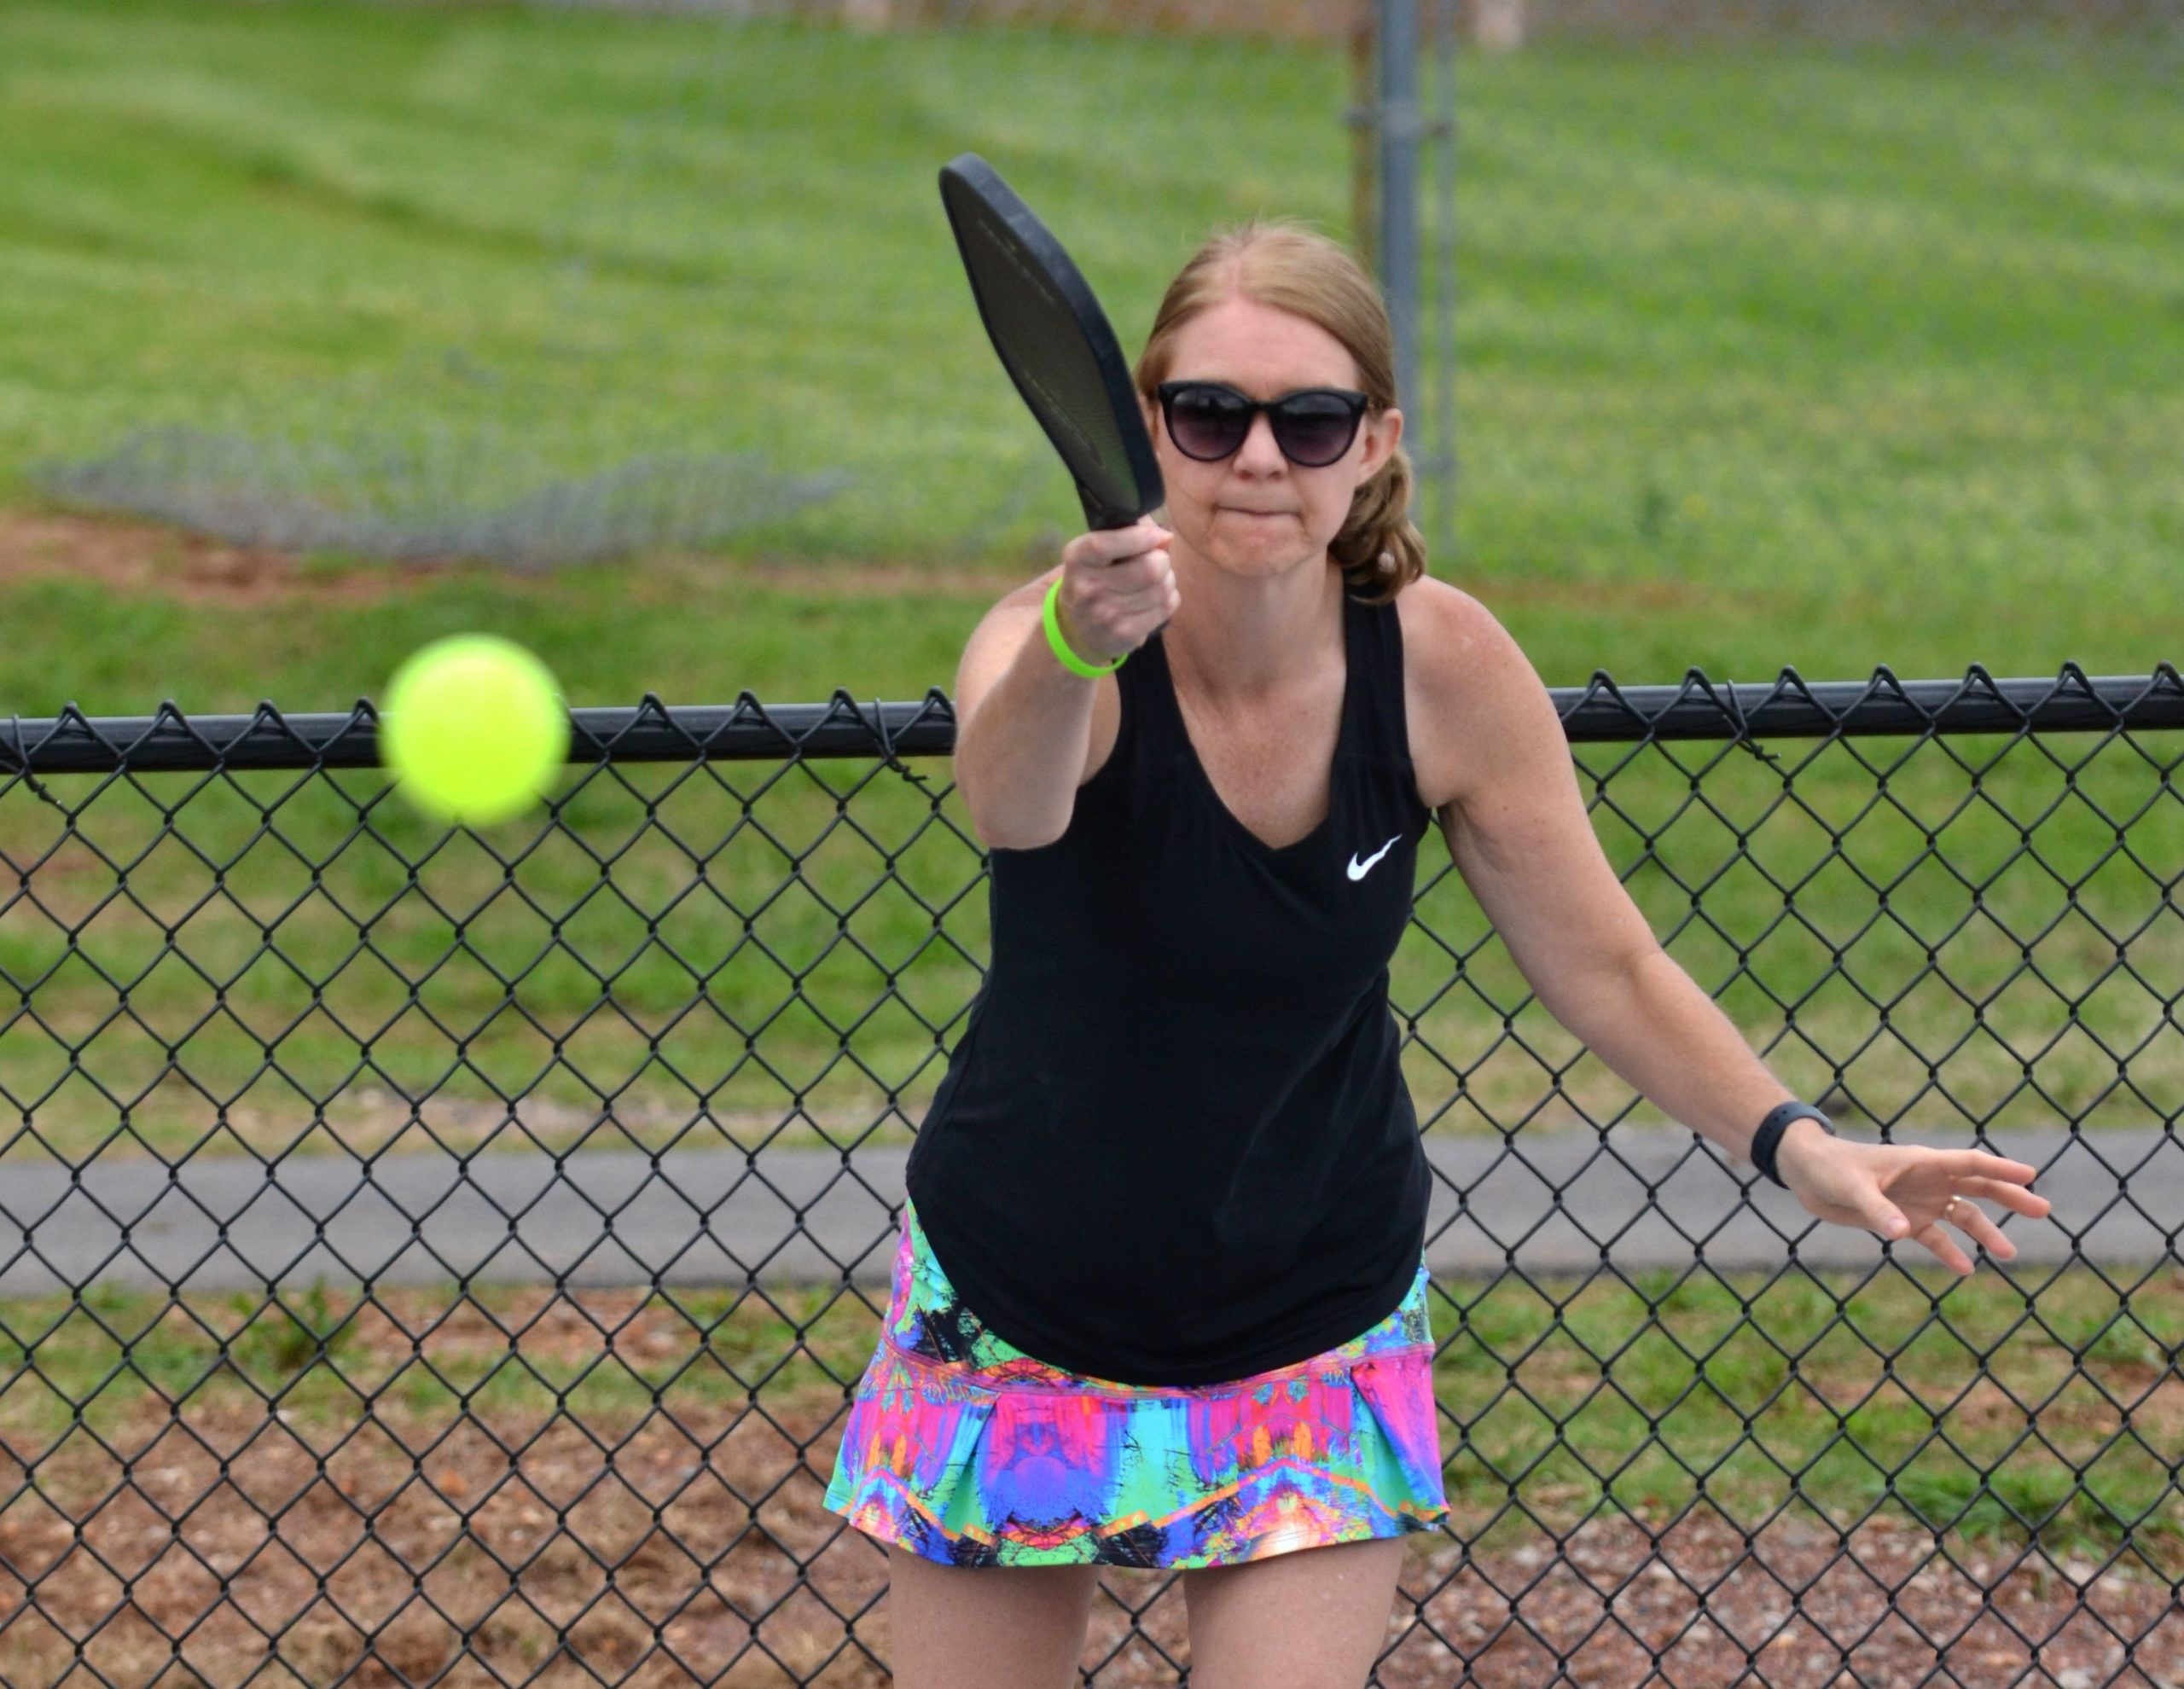 Birmingham ranks among top cities for pickleball players